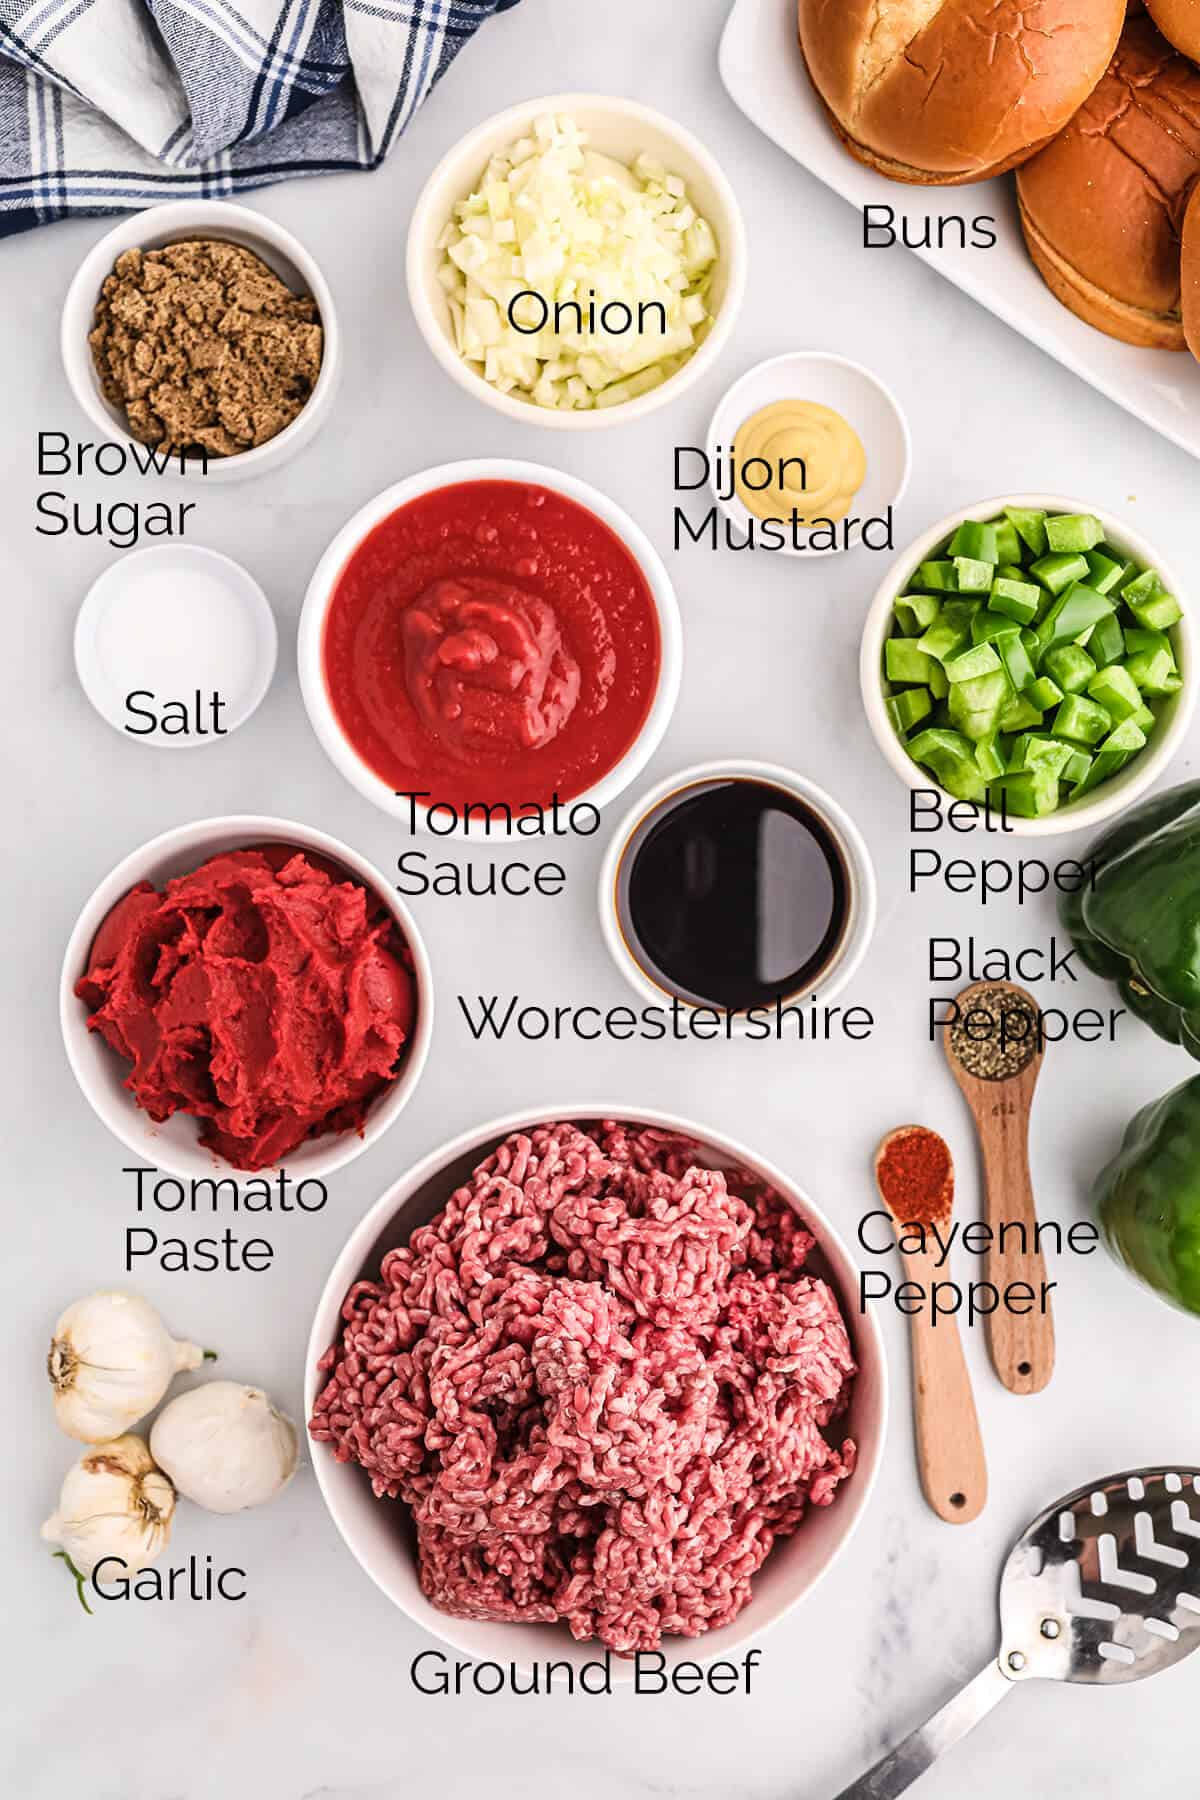 Photo of all the ingredients needed for the recipe.